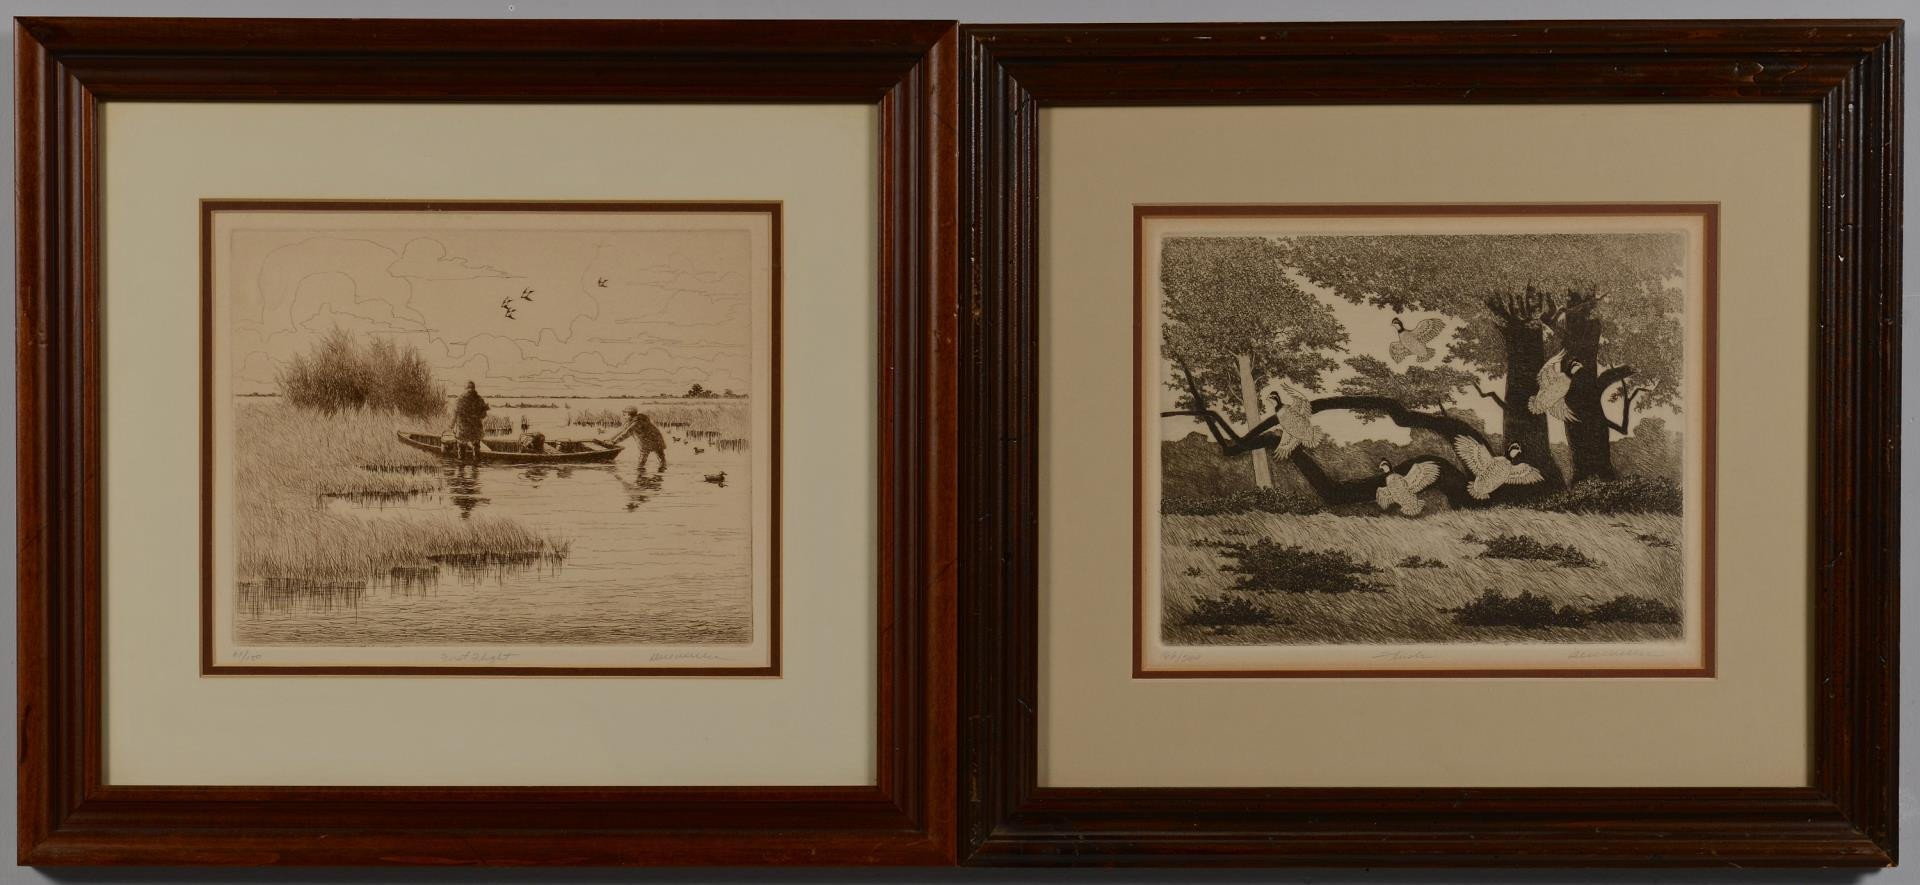 Lot 3594280: 2 Dell Weller Duck Hunt Prints